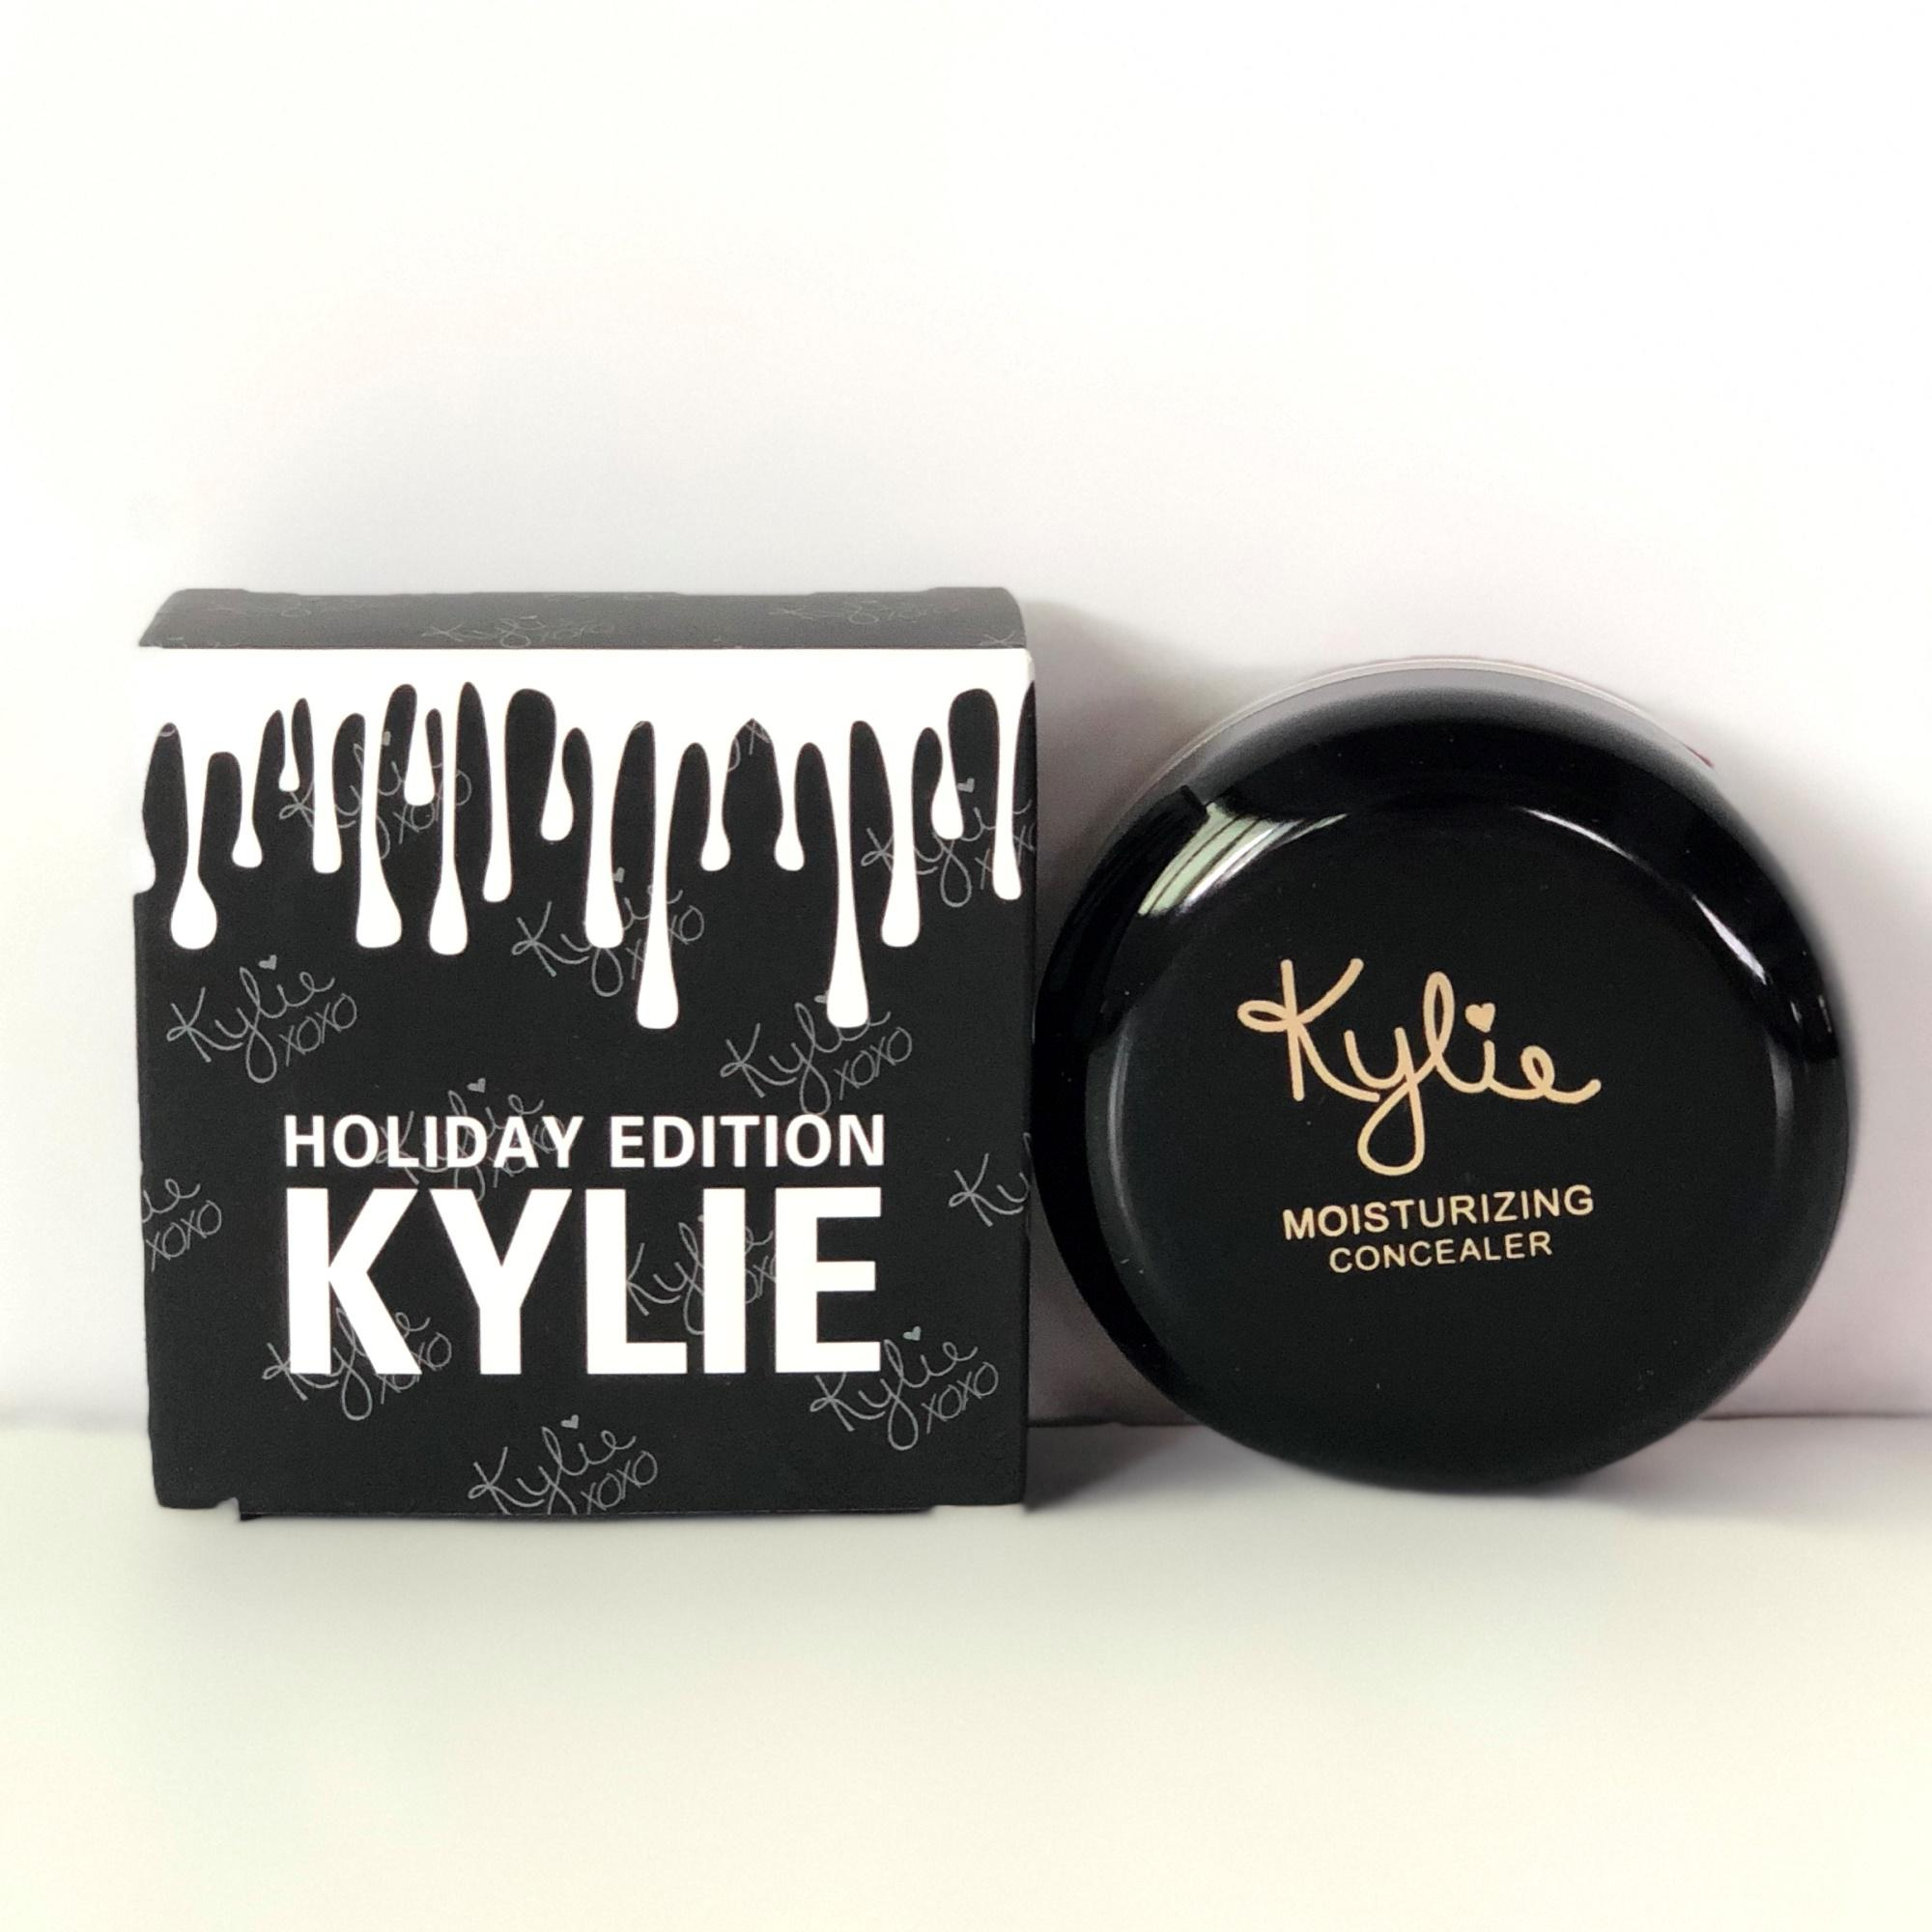 KYLIE HOLIDAY EDITION MOISTURIZING CONCEALER Philippines